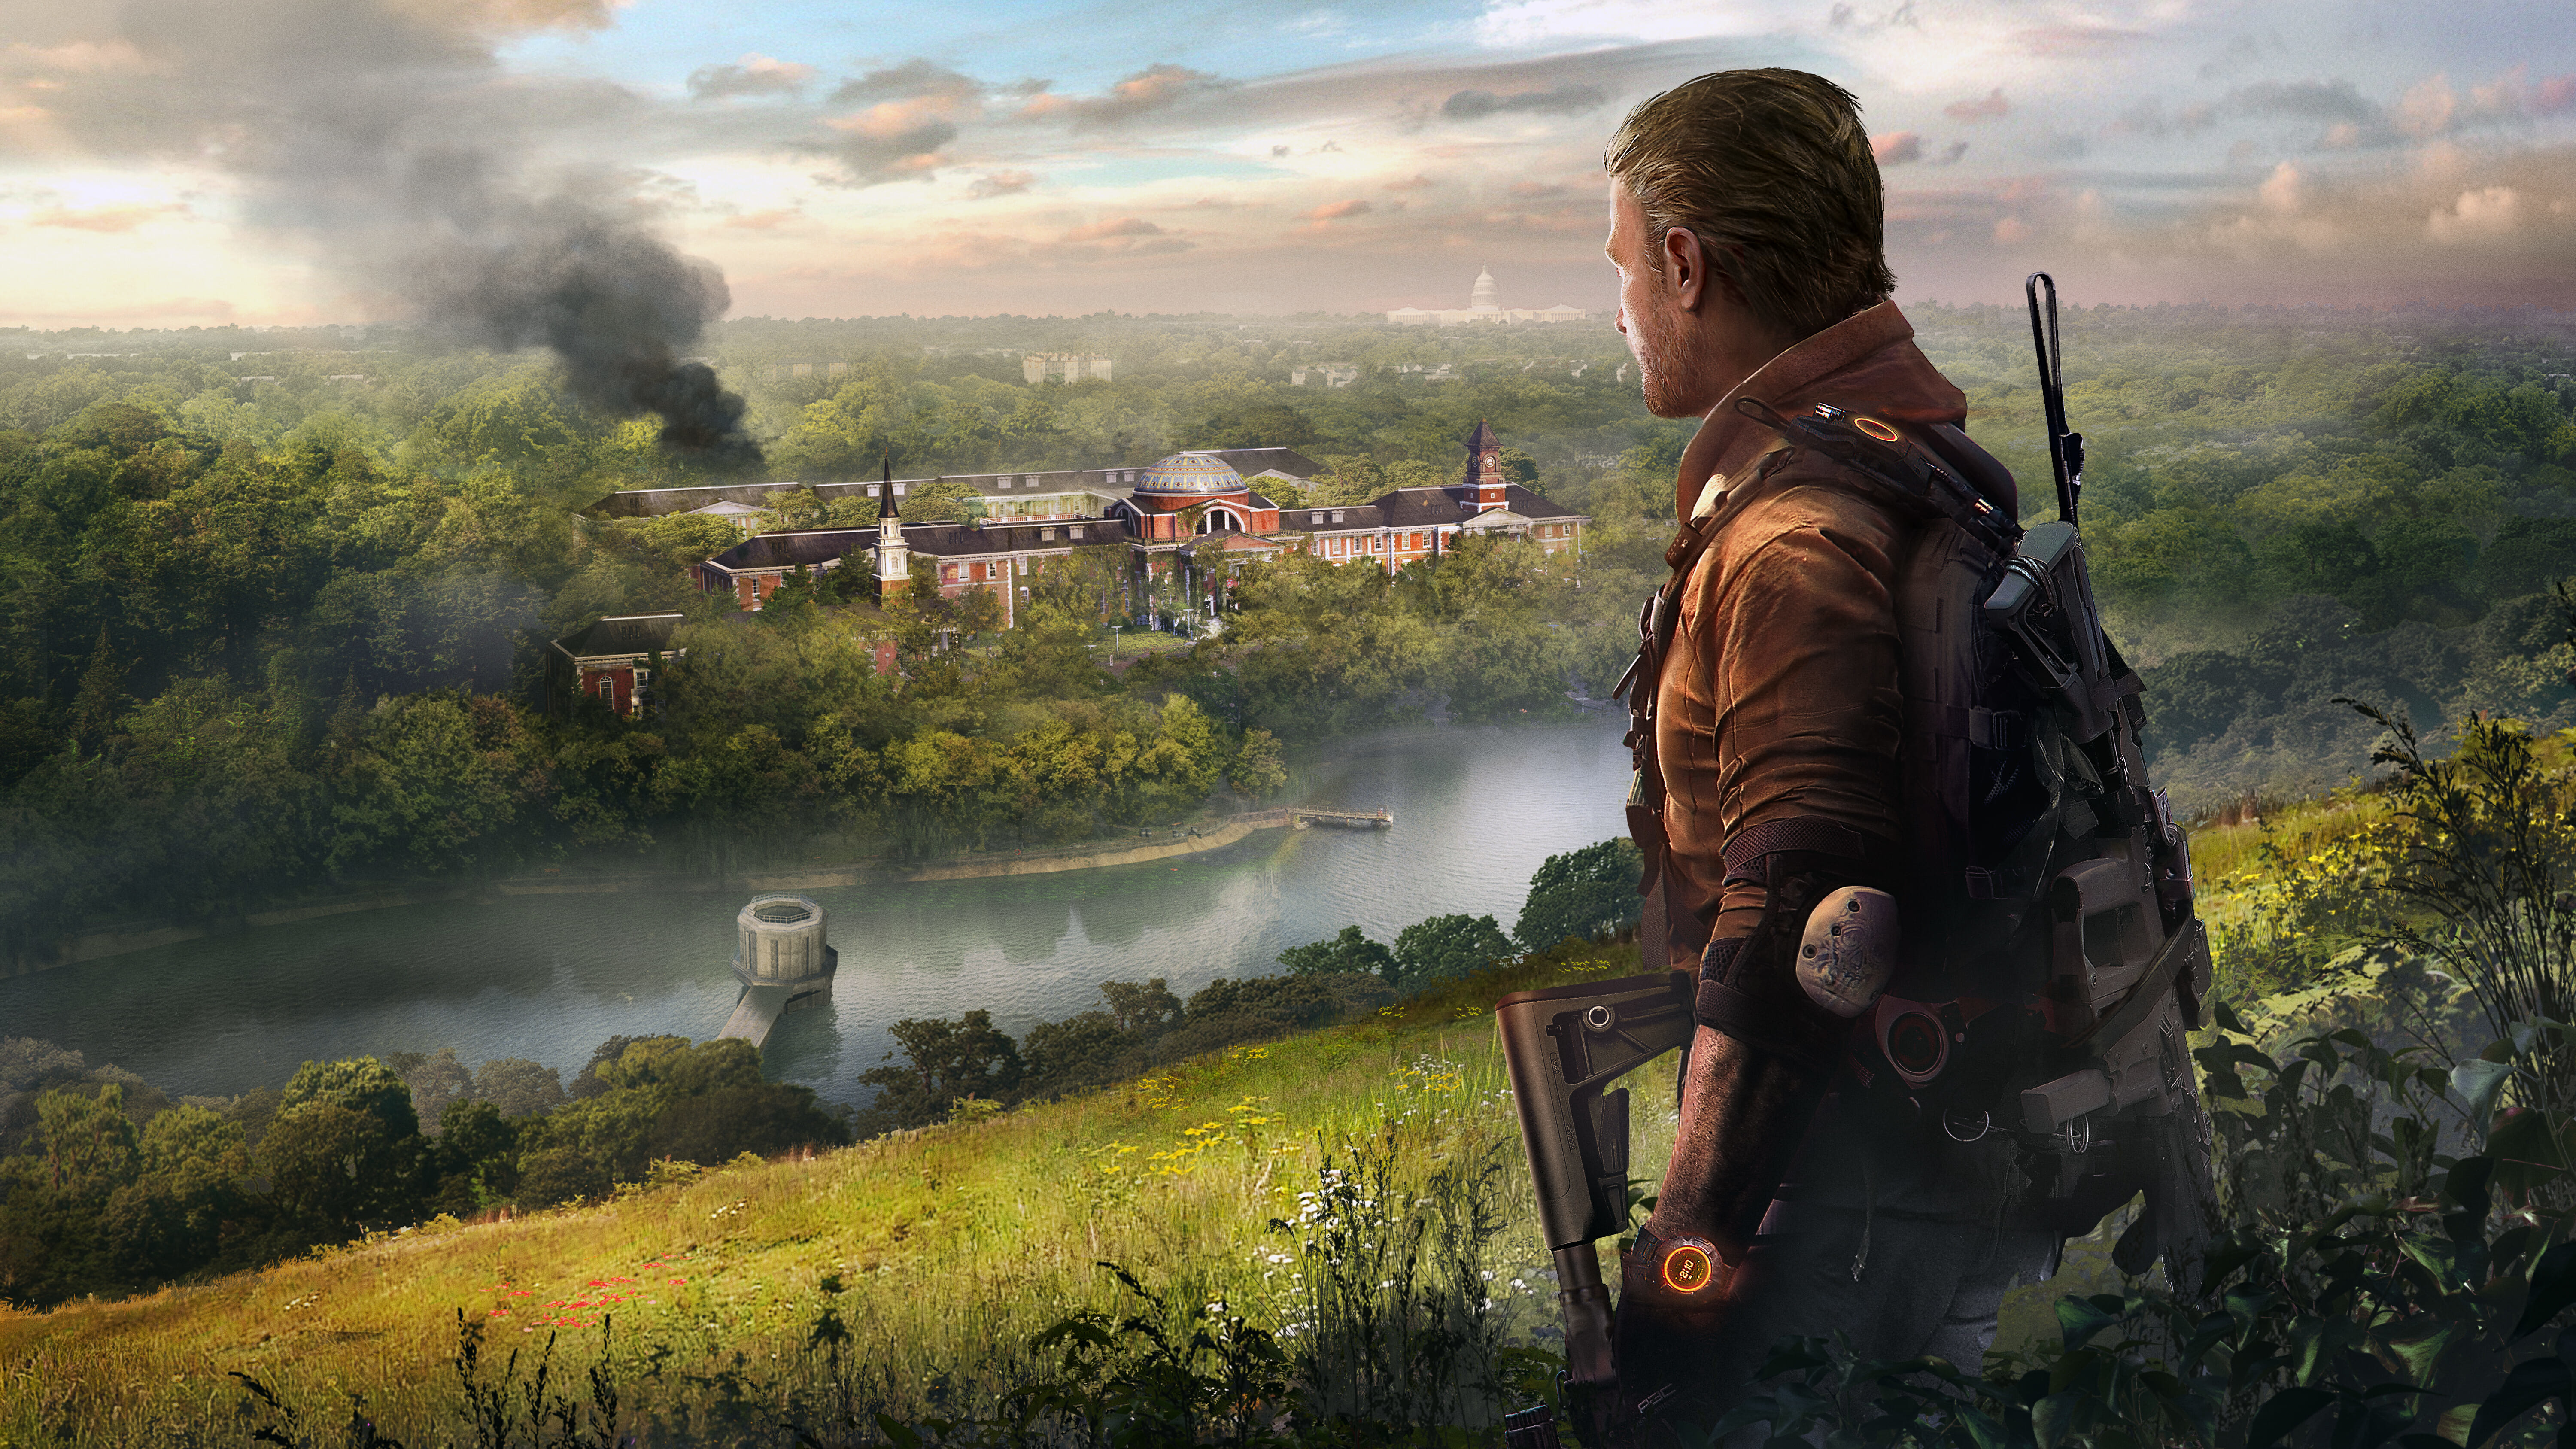 The Division 2 Episode 1 Wallpaper, HD Games 4K Wallpapers ...